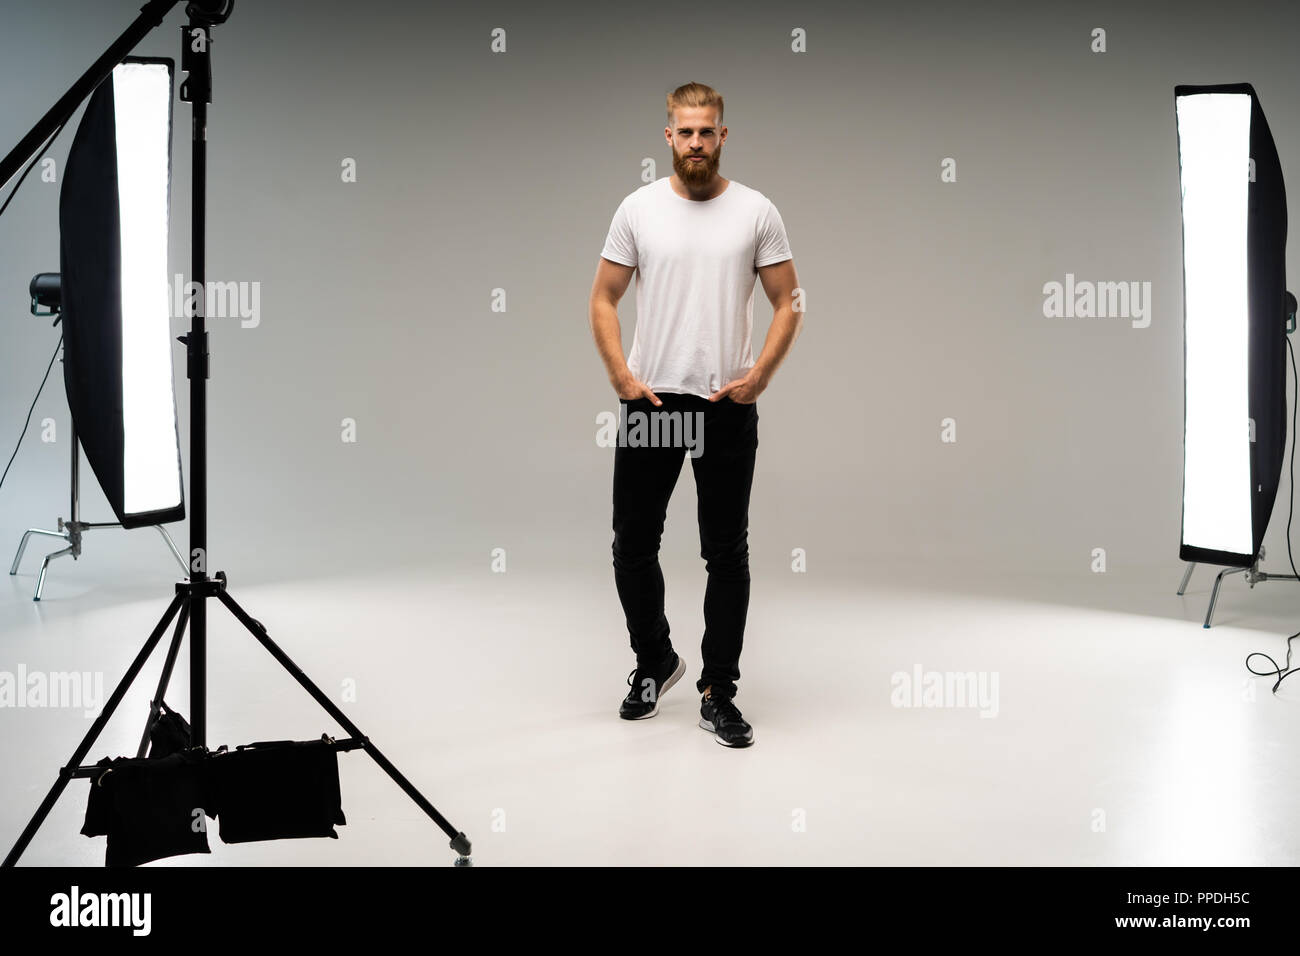 backstage self-confident man equipment workplace photo studio concept. Photography of fashion look - Stock Image